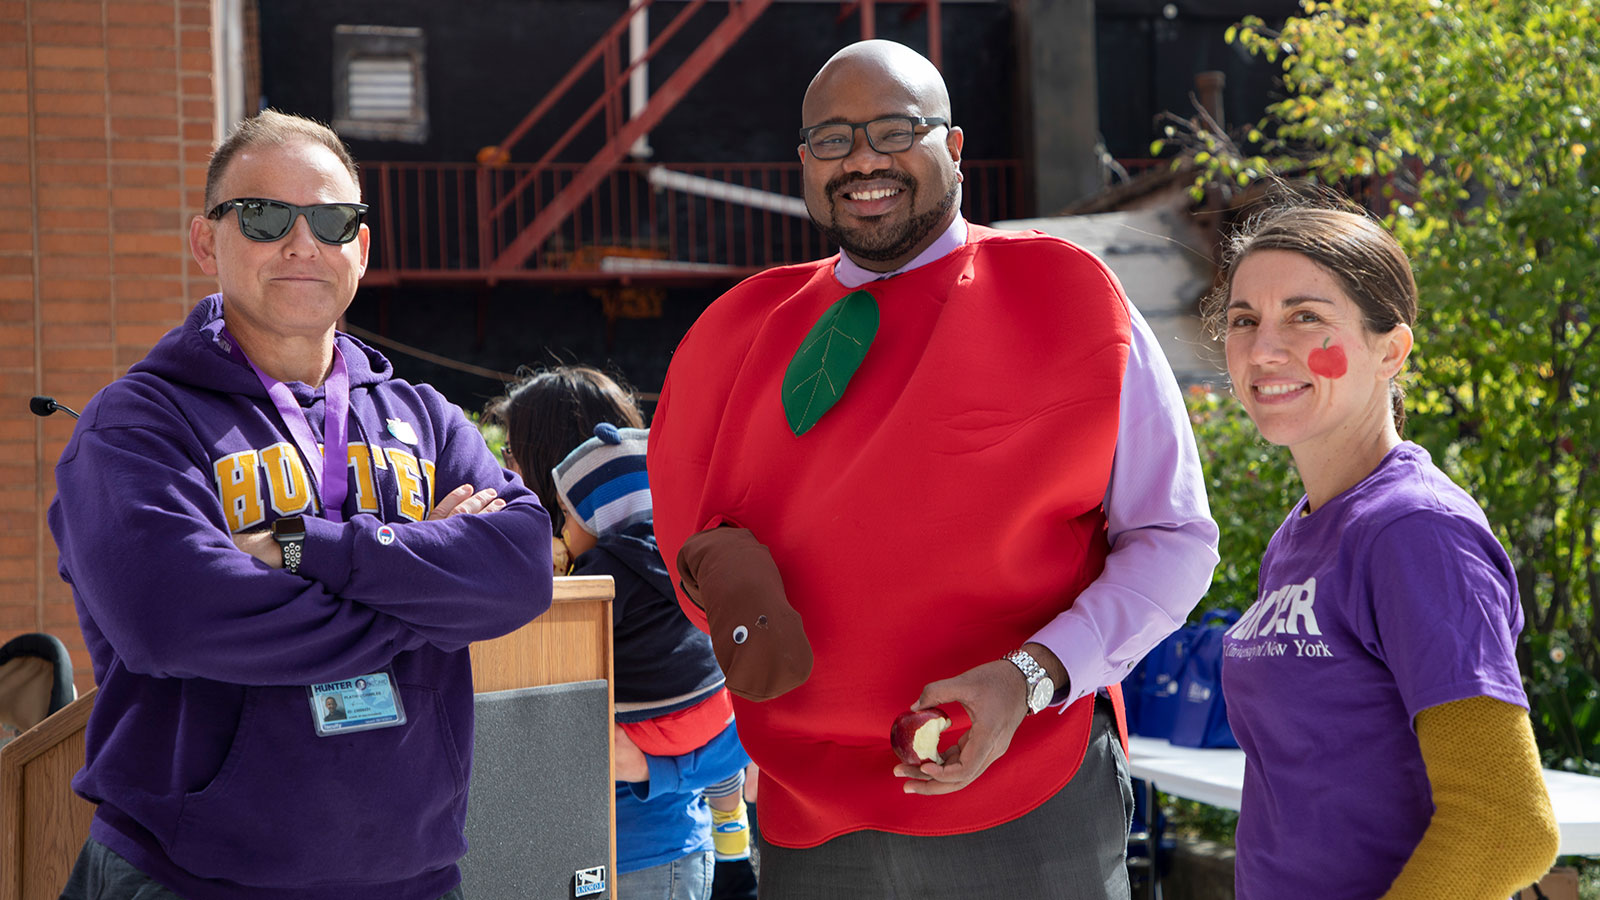 3 people holding apples for big apple crunch